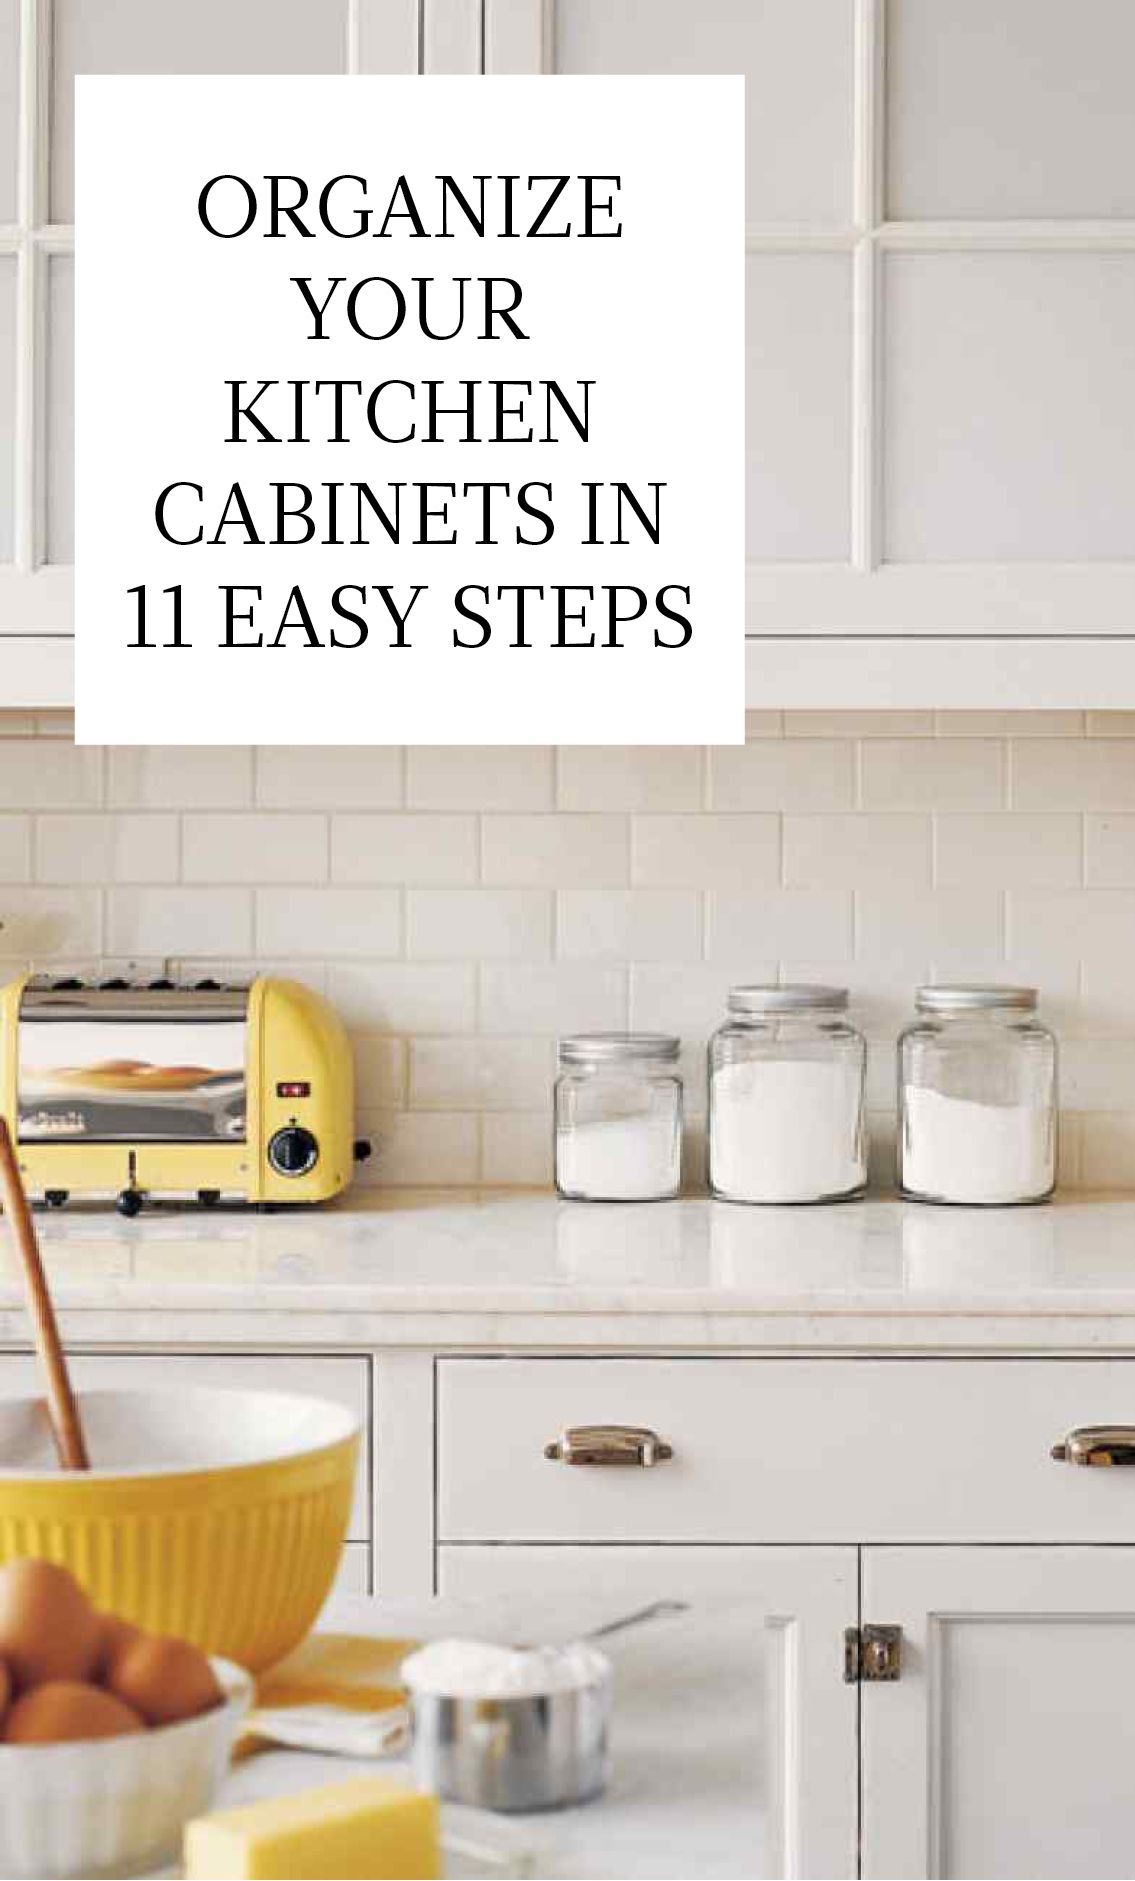 Organize Kitchen Cabinets Organize Your Kitchen Cabinets In 11 Easy Steps Homekeeping